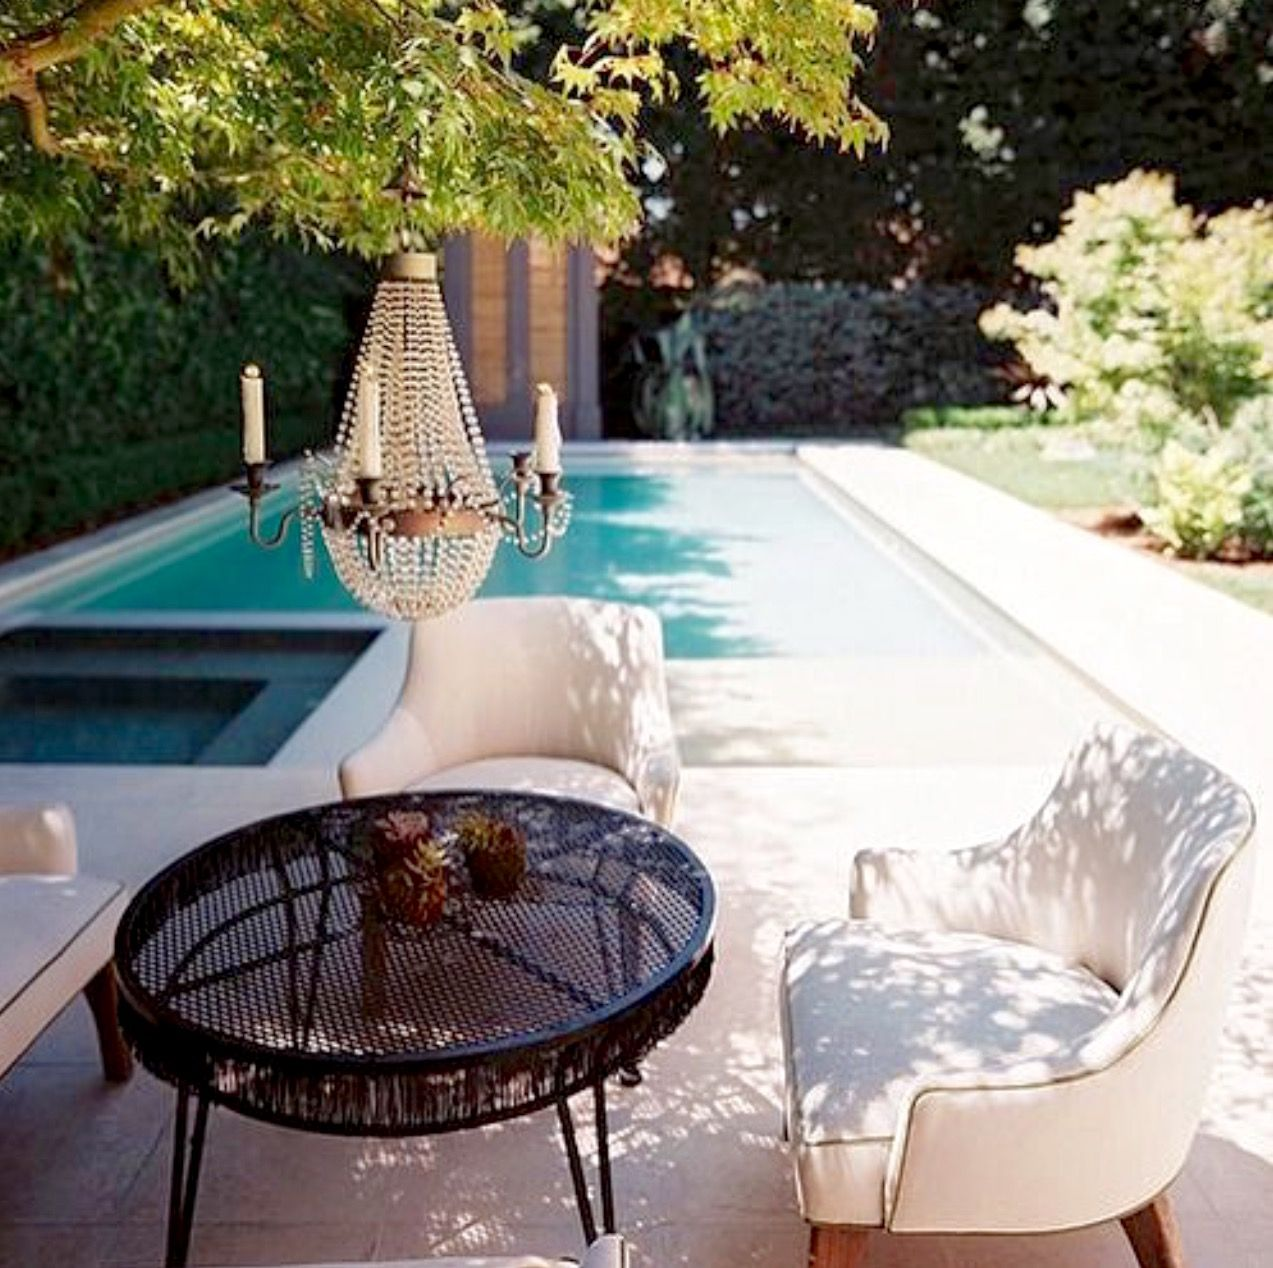 Pin by Julie Oller on Swimming pool designs ideas ... on My Backyard Living id=84074